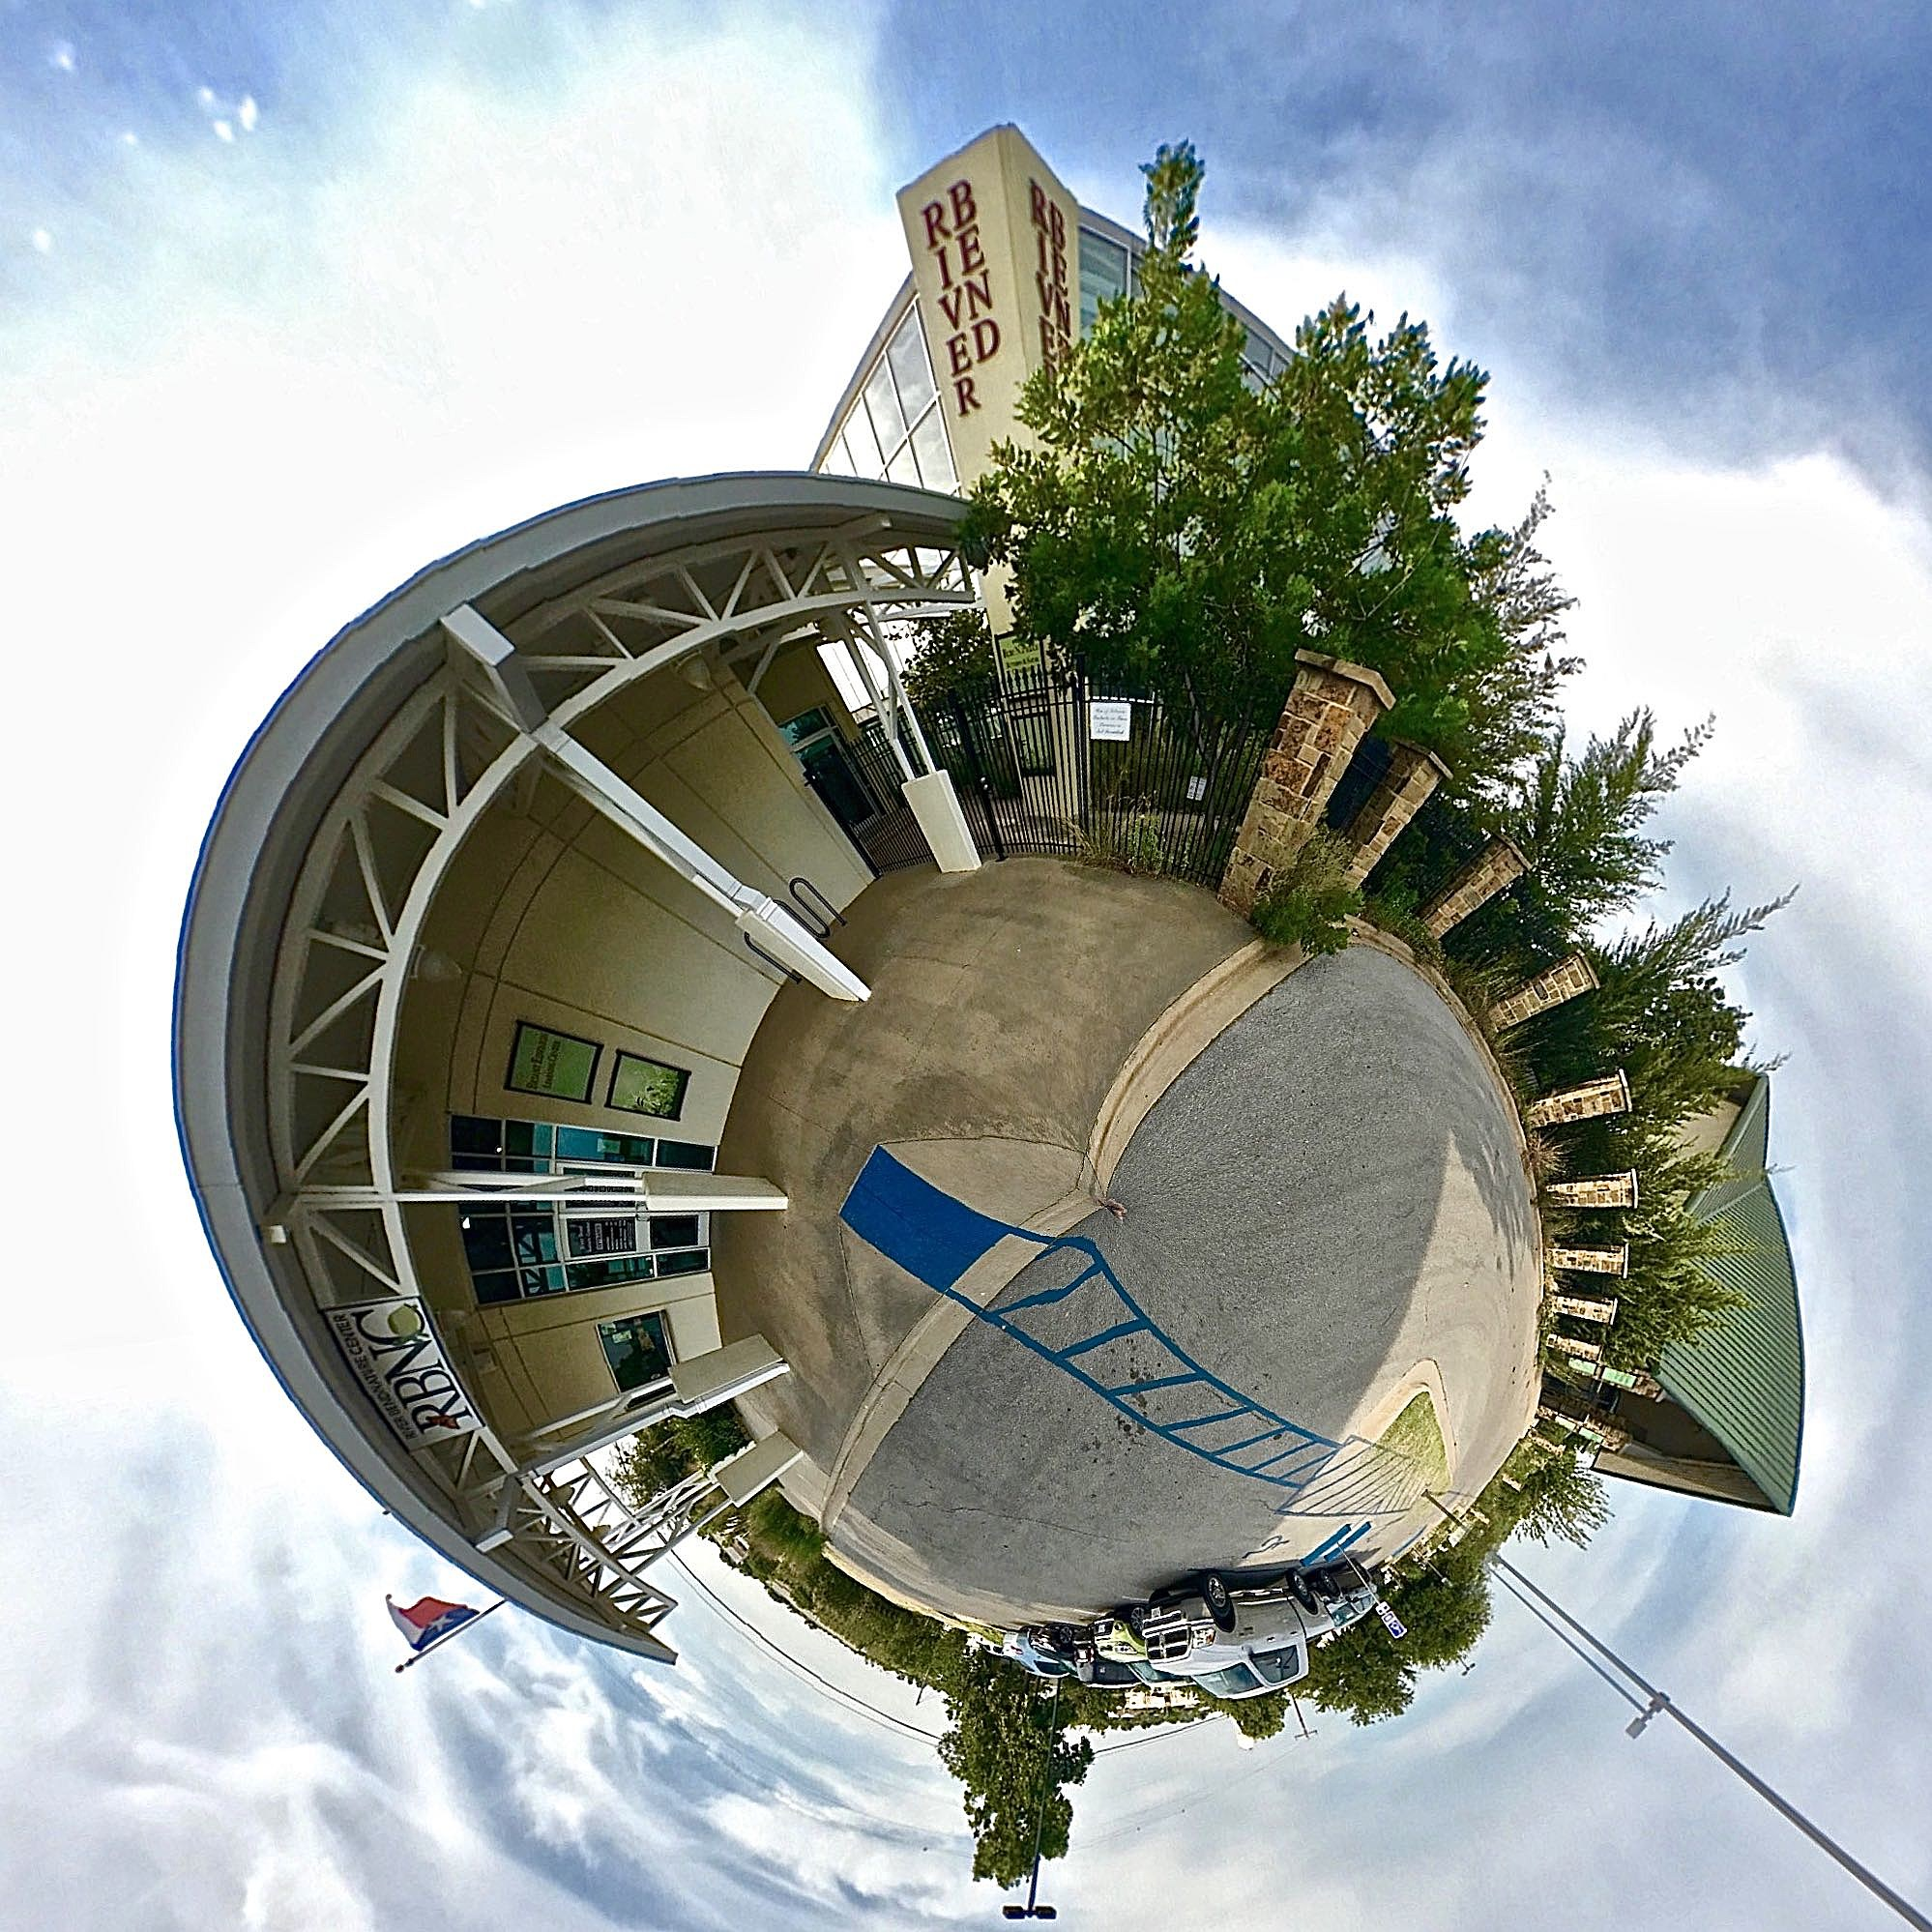 River Bend Nature Center - Tiny Planet